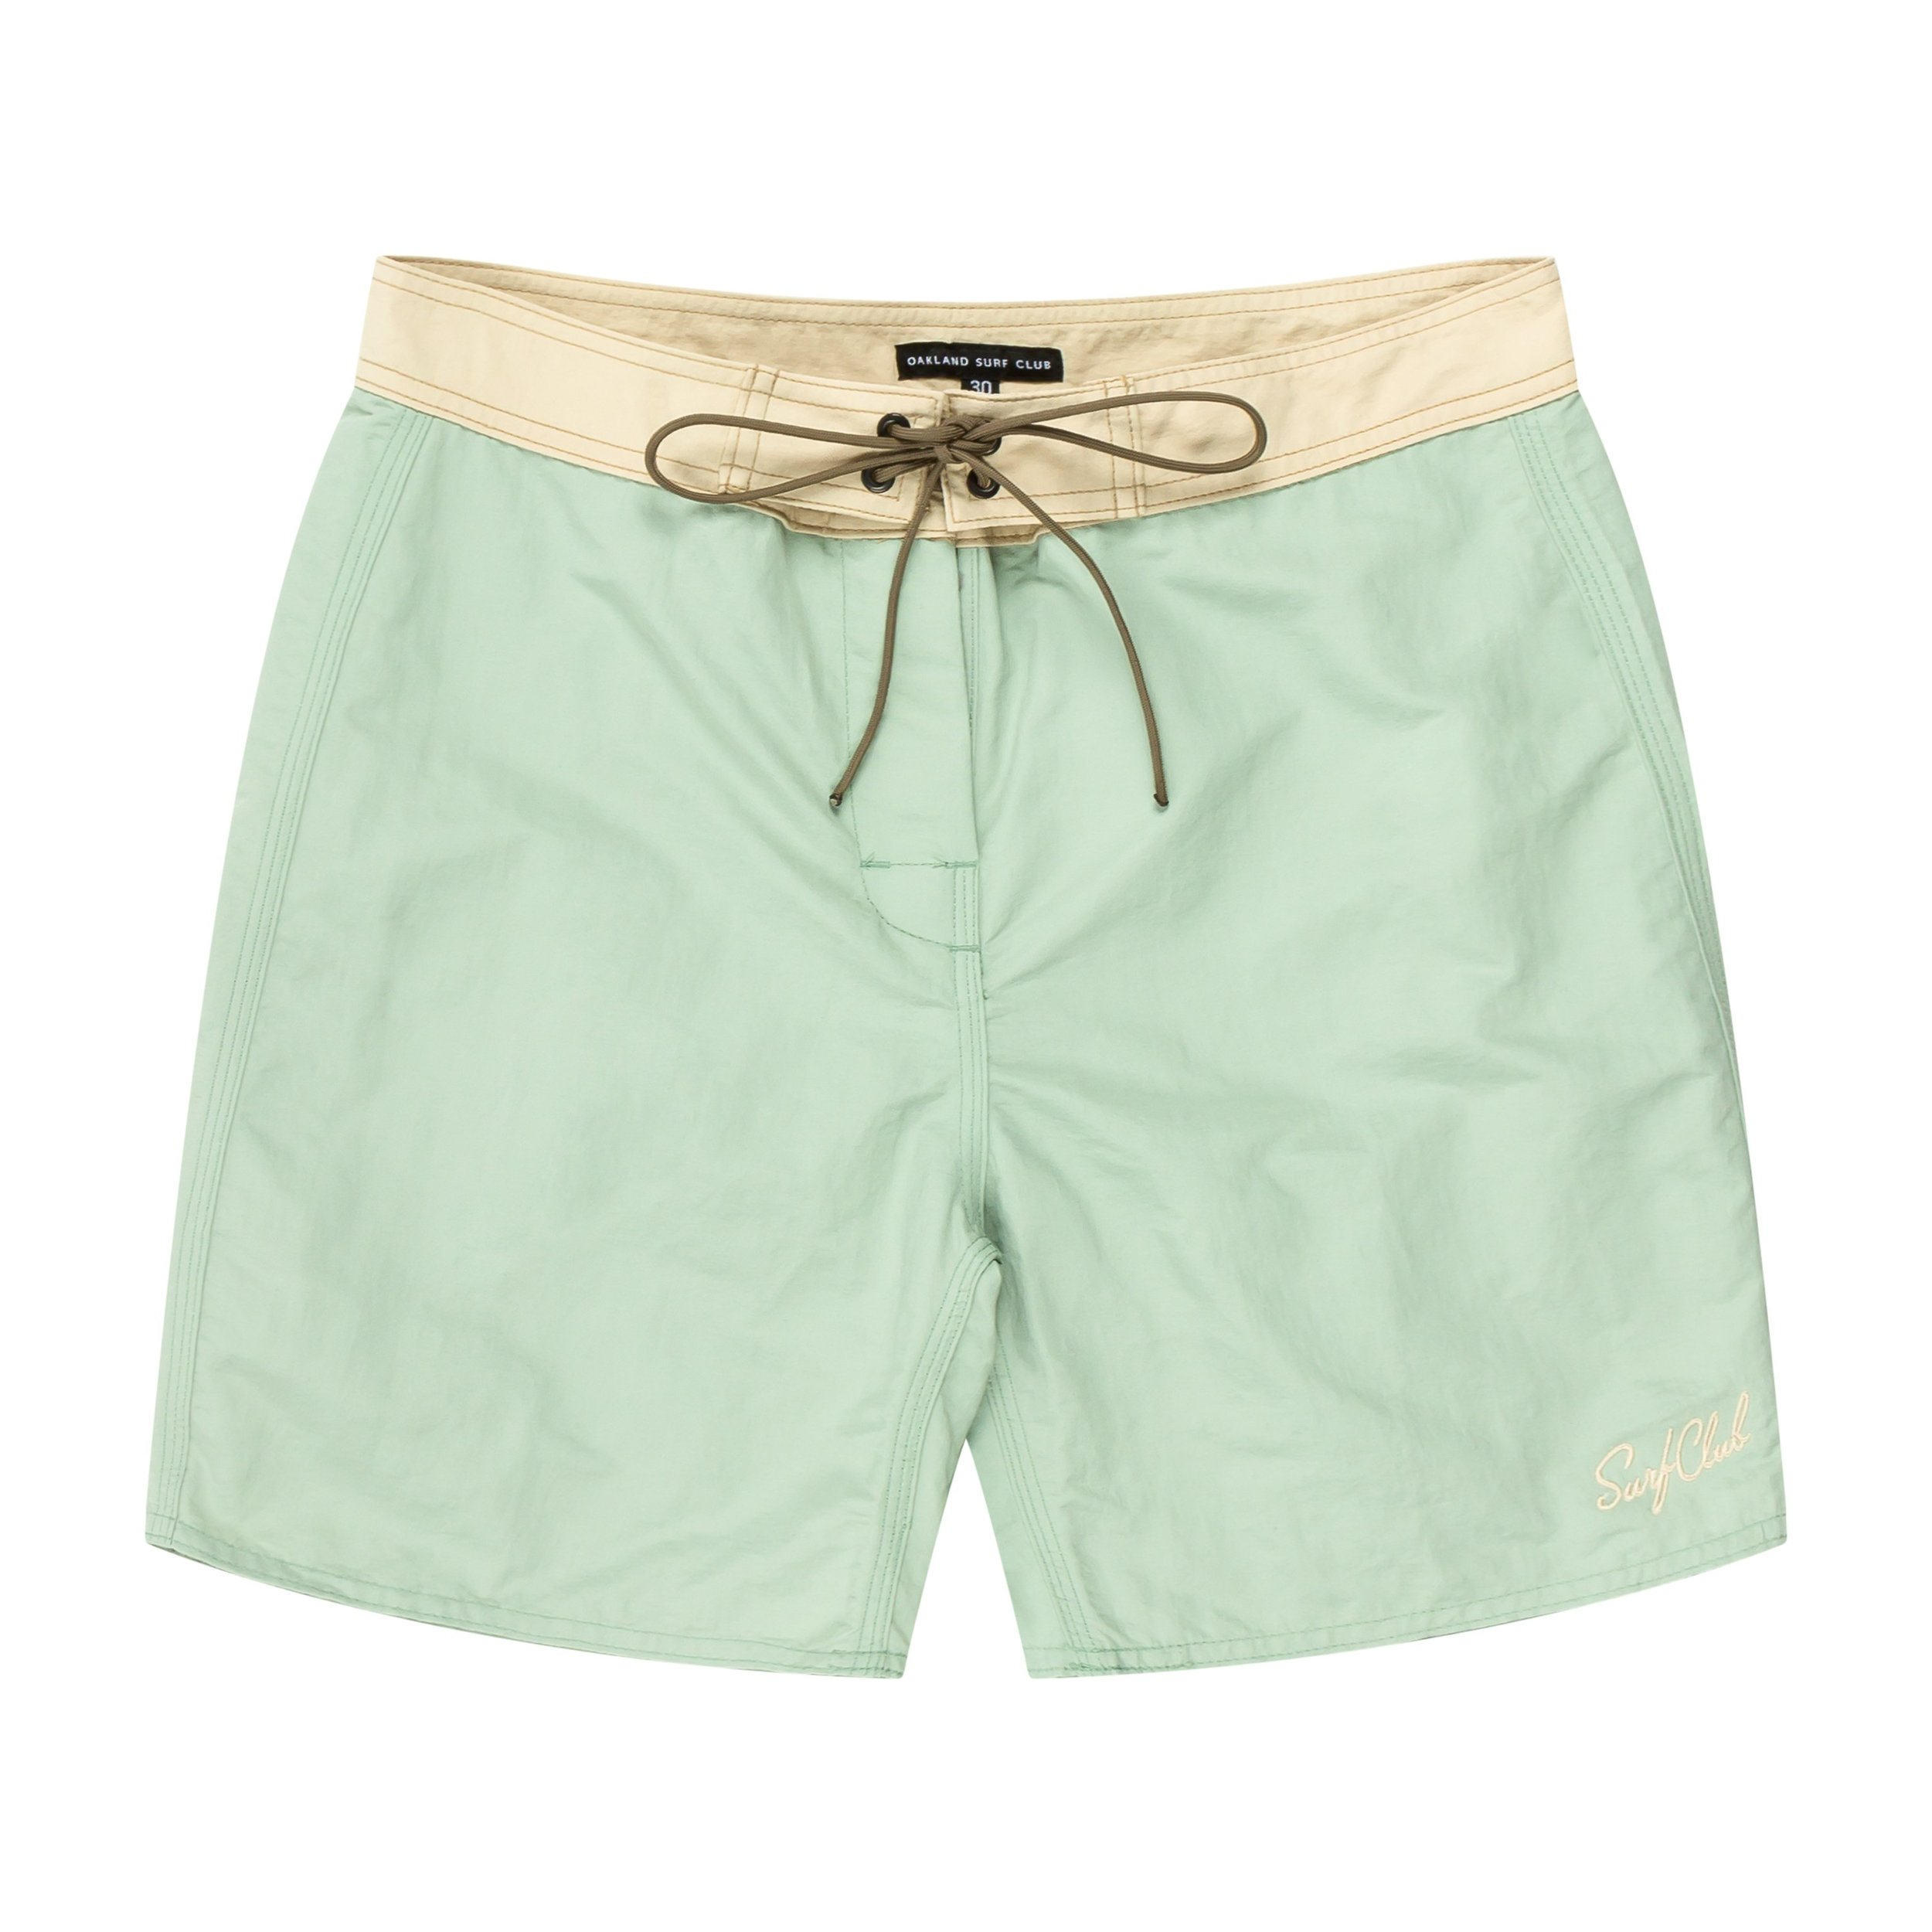 Oakland Surf Club Two-Tone Boardshorts